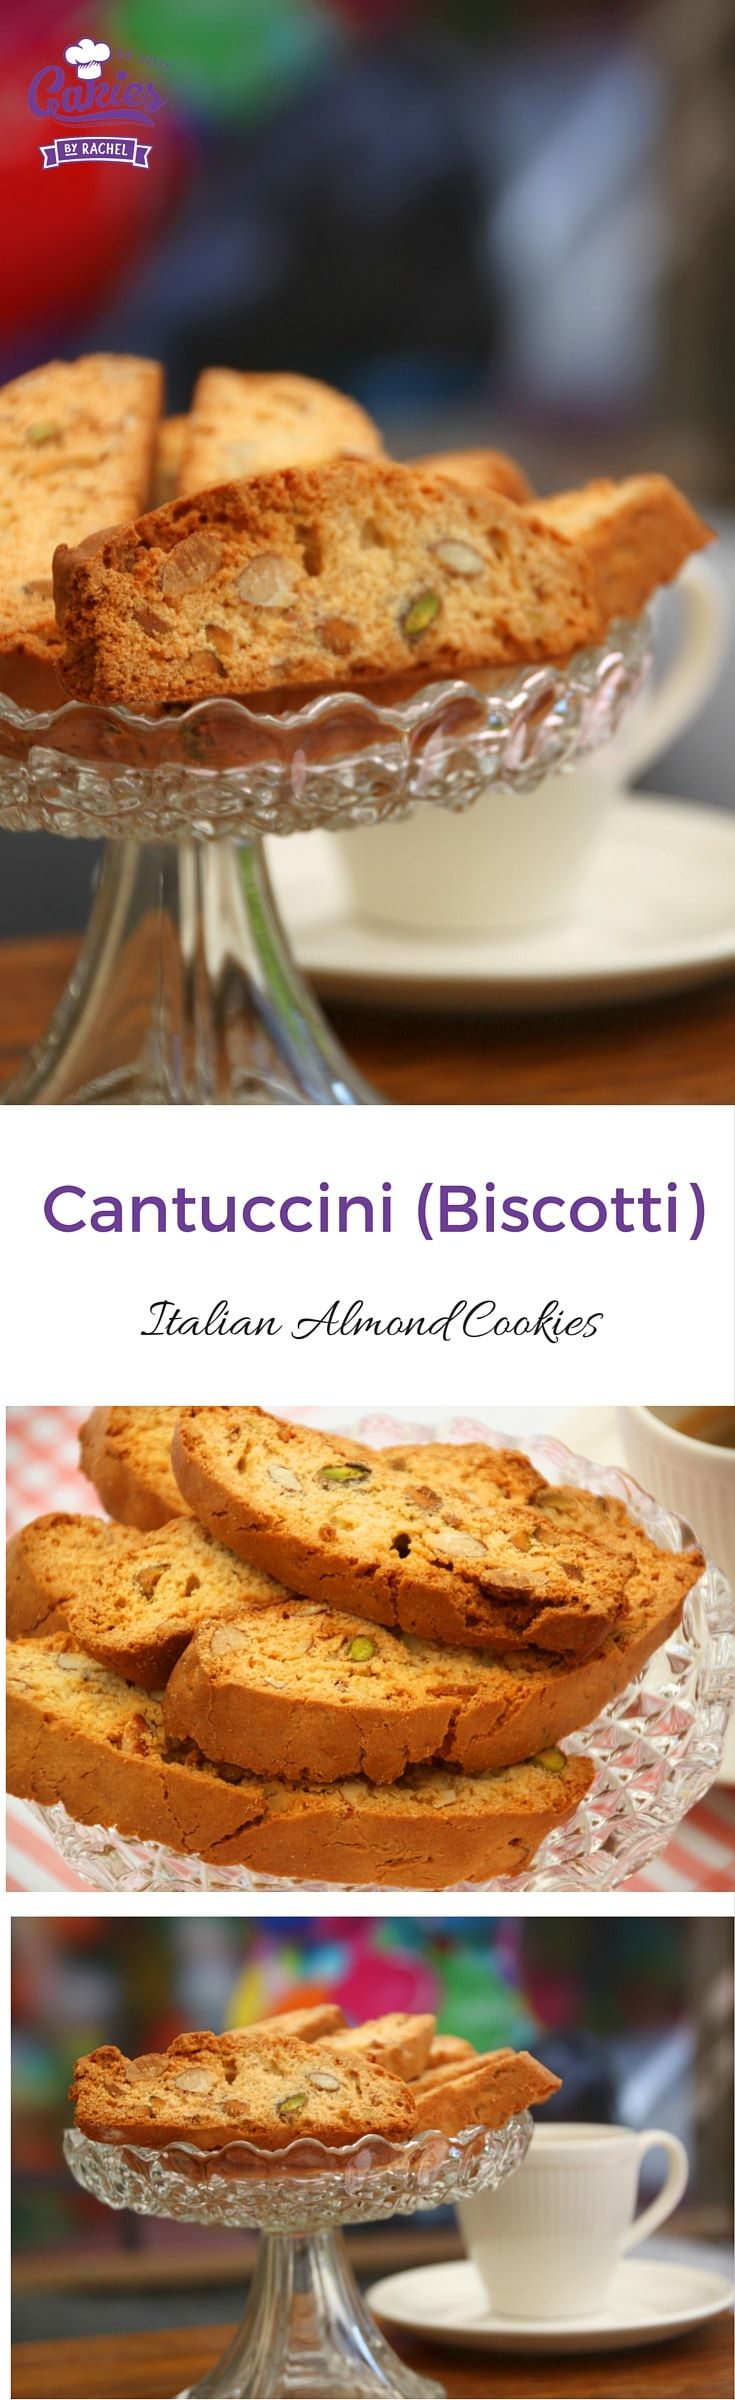 This Cantuccini or Italian Biscotti recipe is really easy. This version of the Italian cookie has a softer bite versus the original hard one